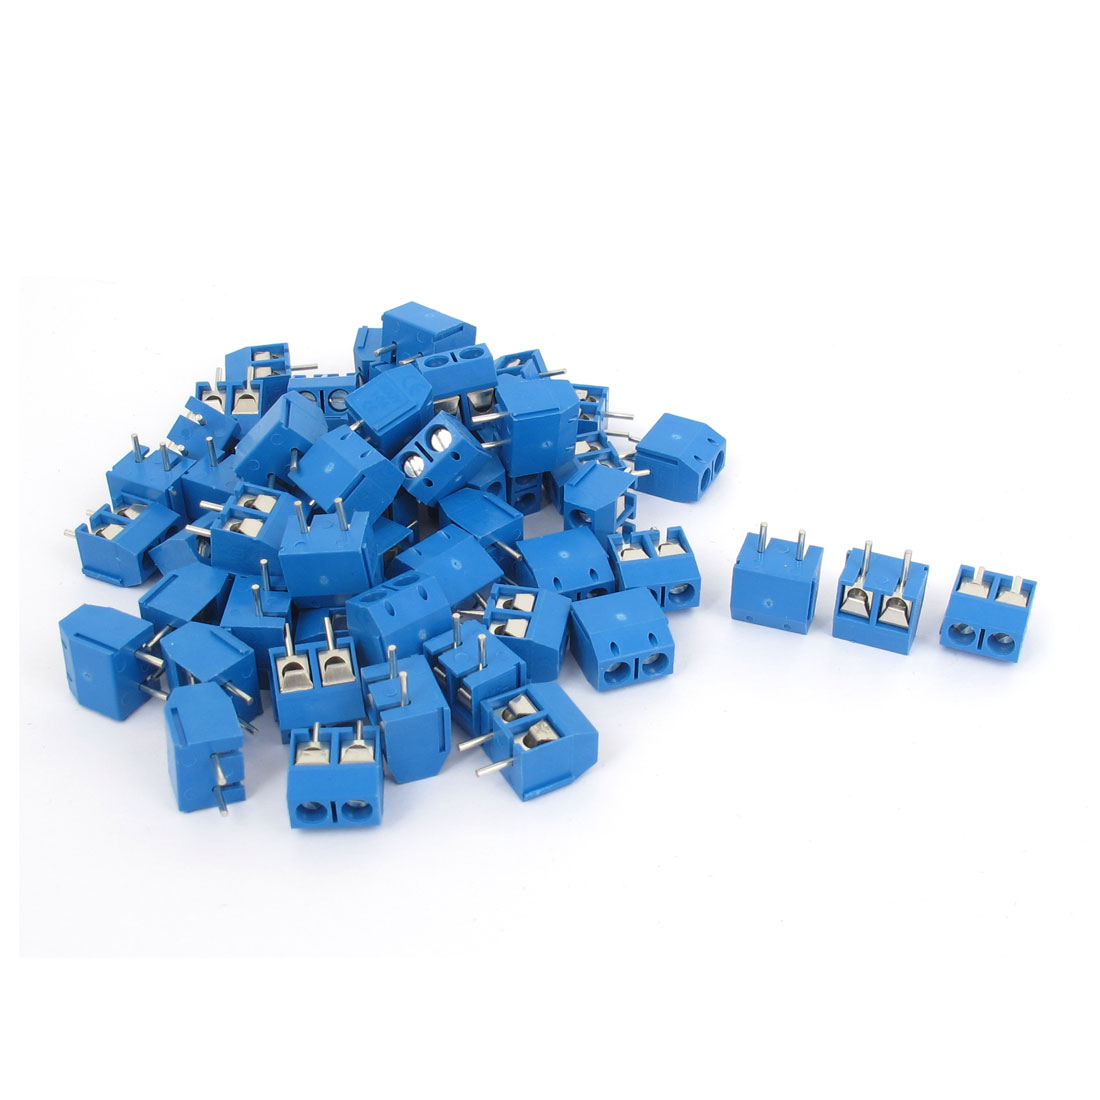 AC 300V 10A 5mm Plug-in Screw Terminal Block Connector PCB Mount 80PCS